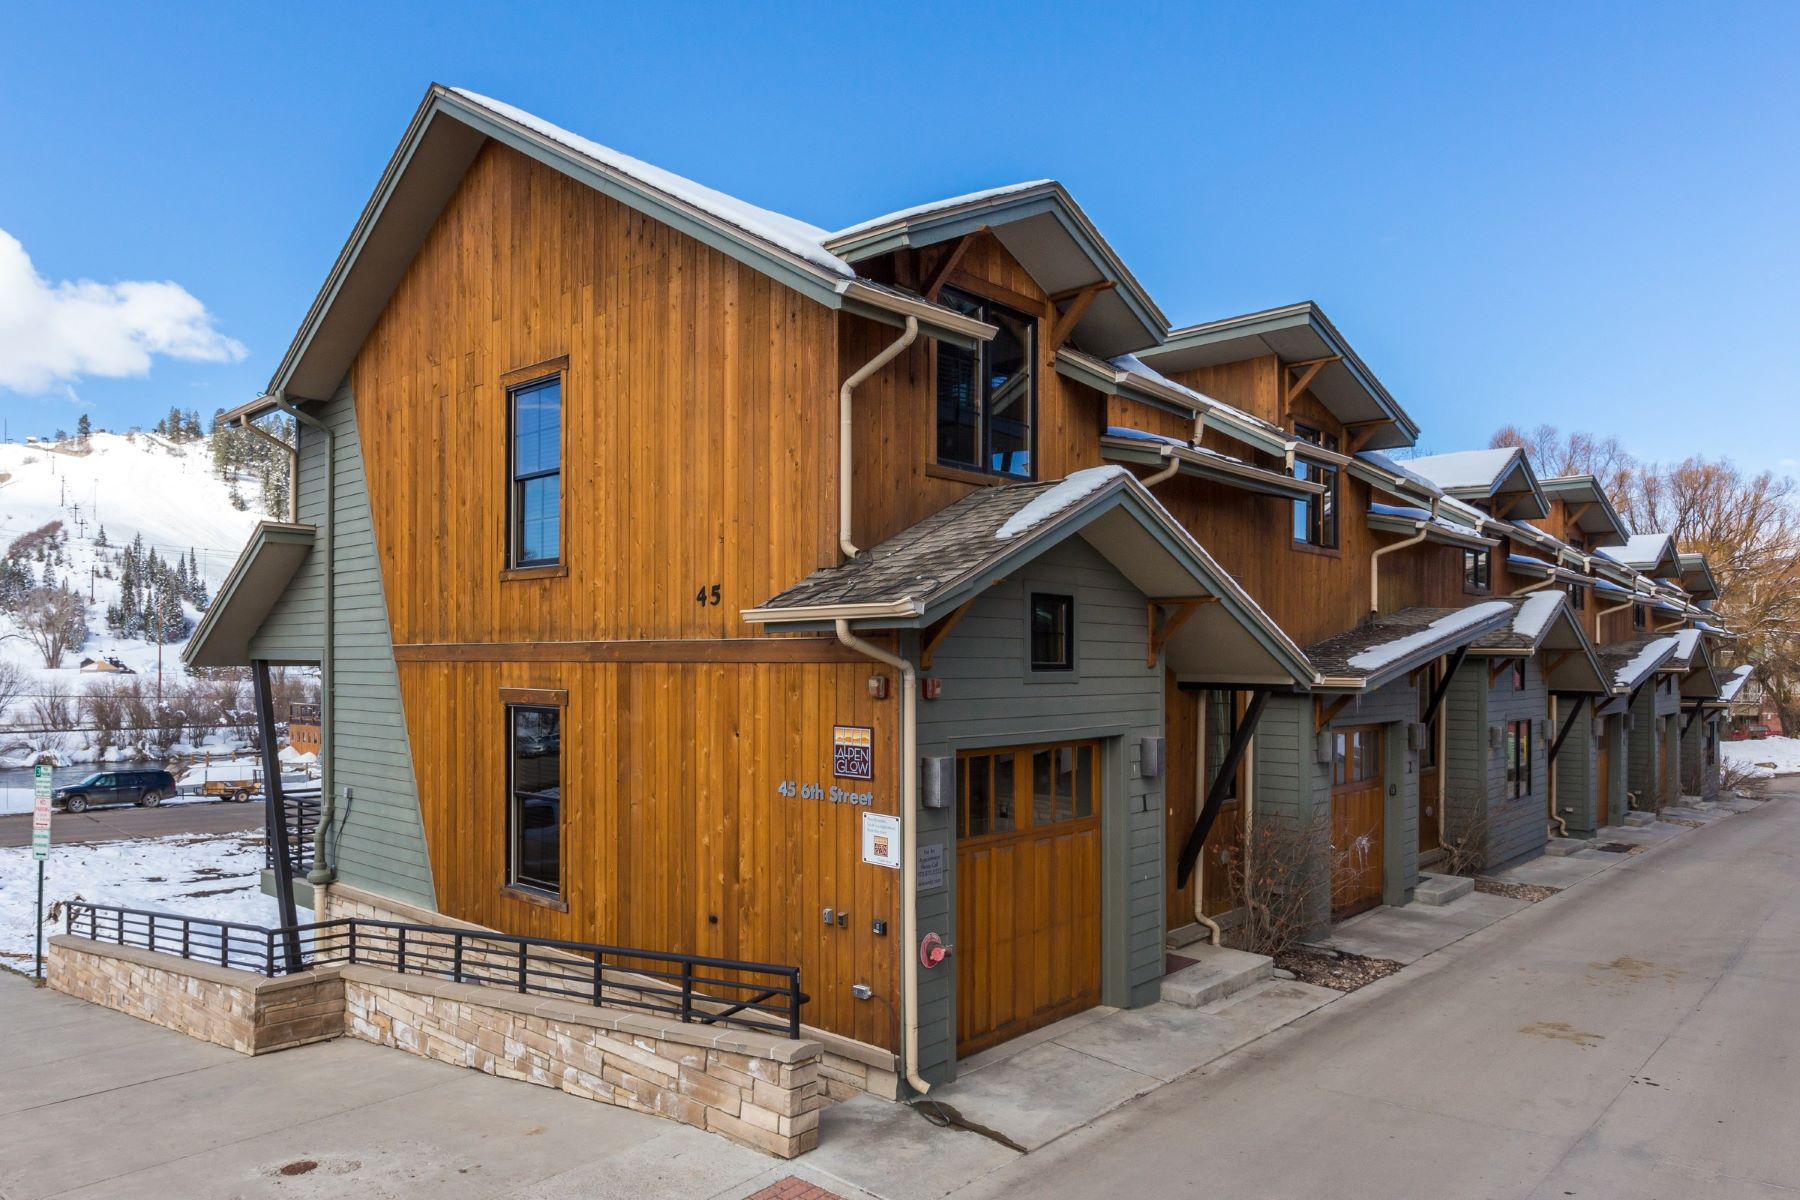 Single Family Home for Rent at Alpenglow Row House #1 45 6th Street #1 Steamboat Springs, Colorado 80487 United States